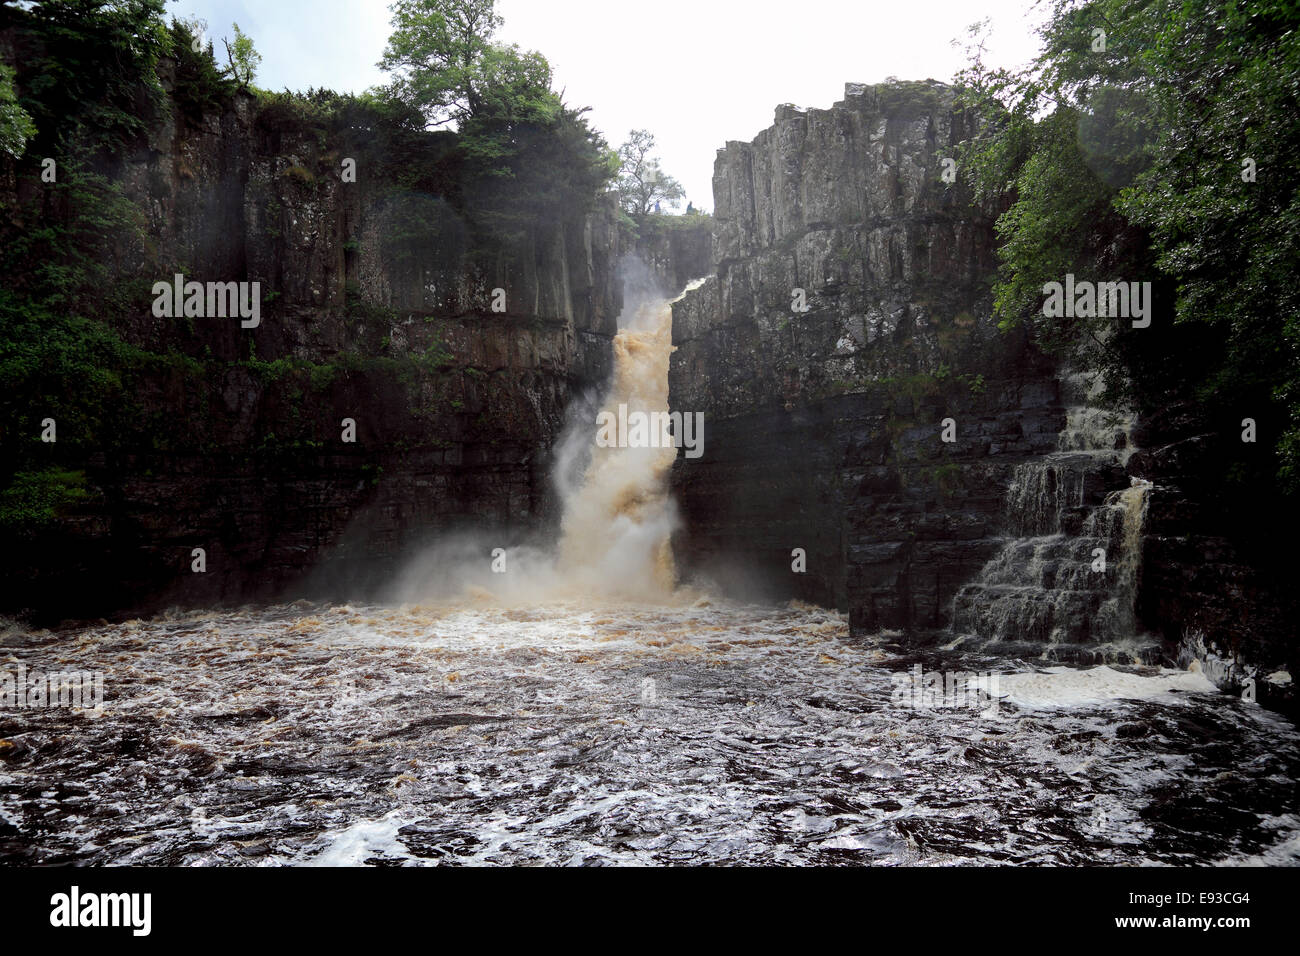 3229. High Force Waterfall, River Tees, Teesdale, Durham, UK - Stock Image